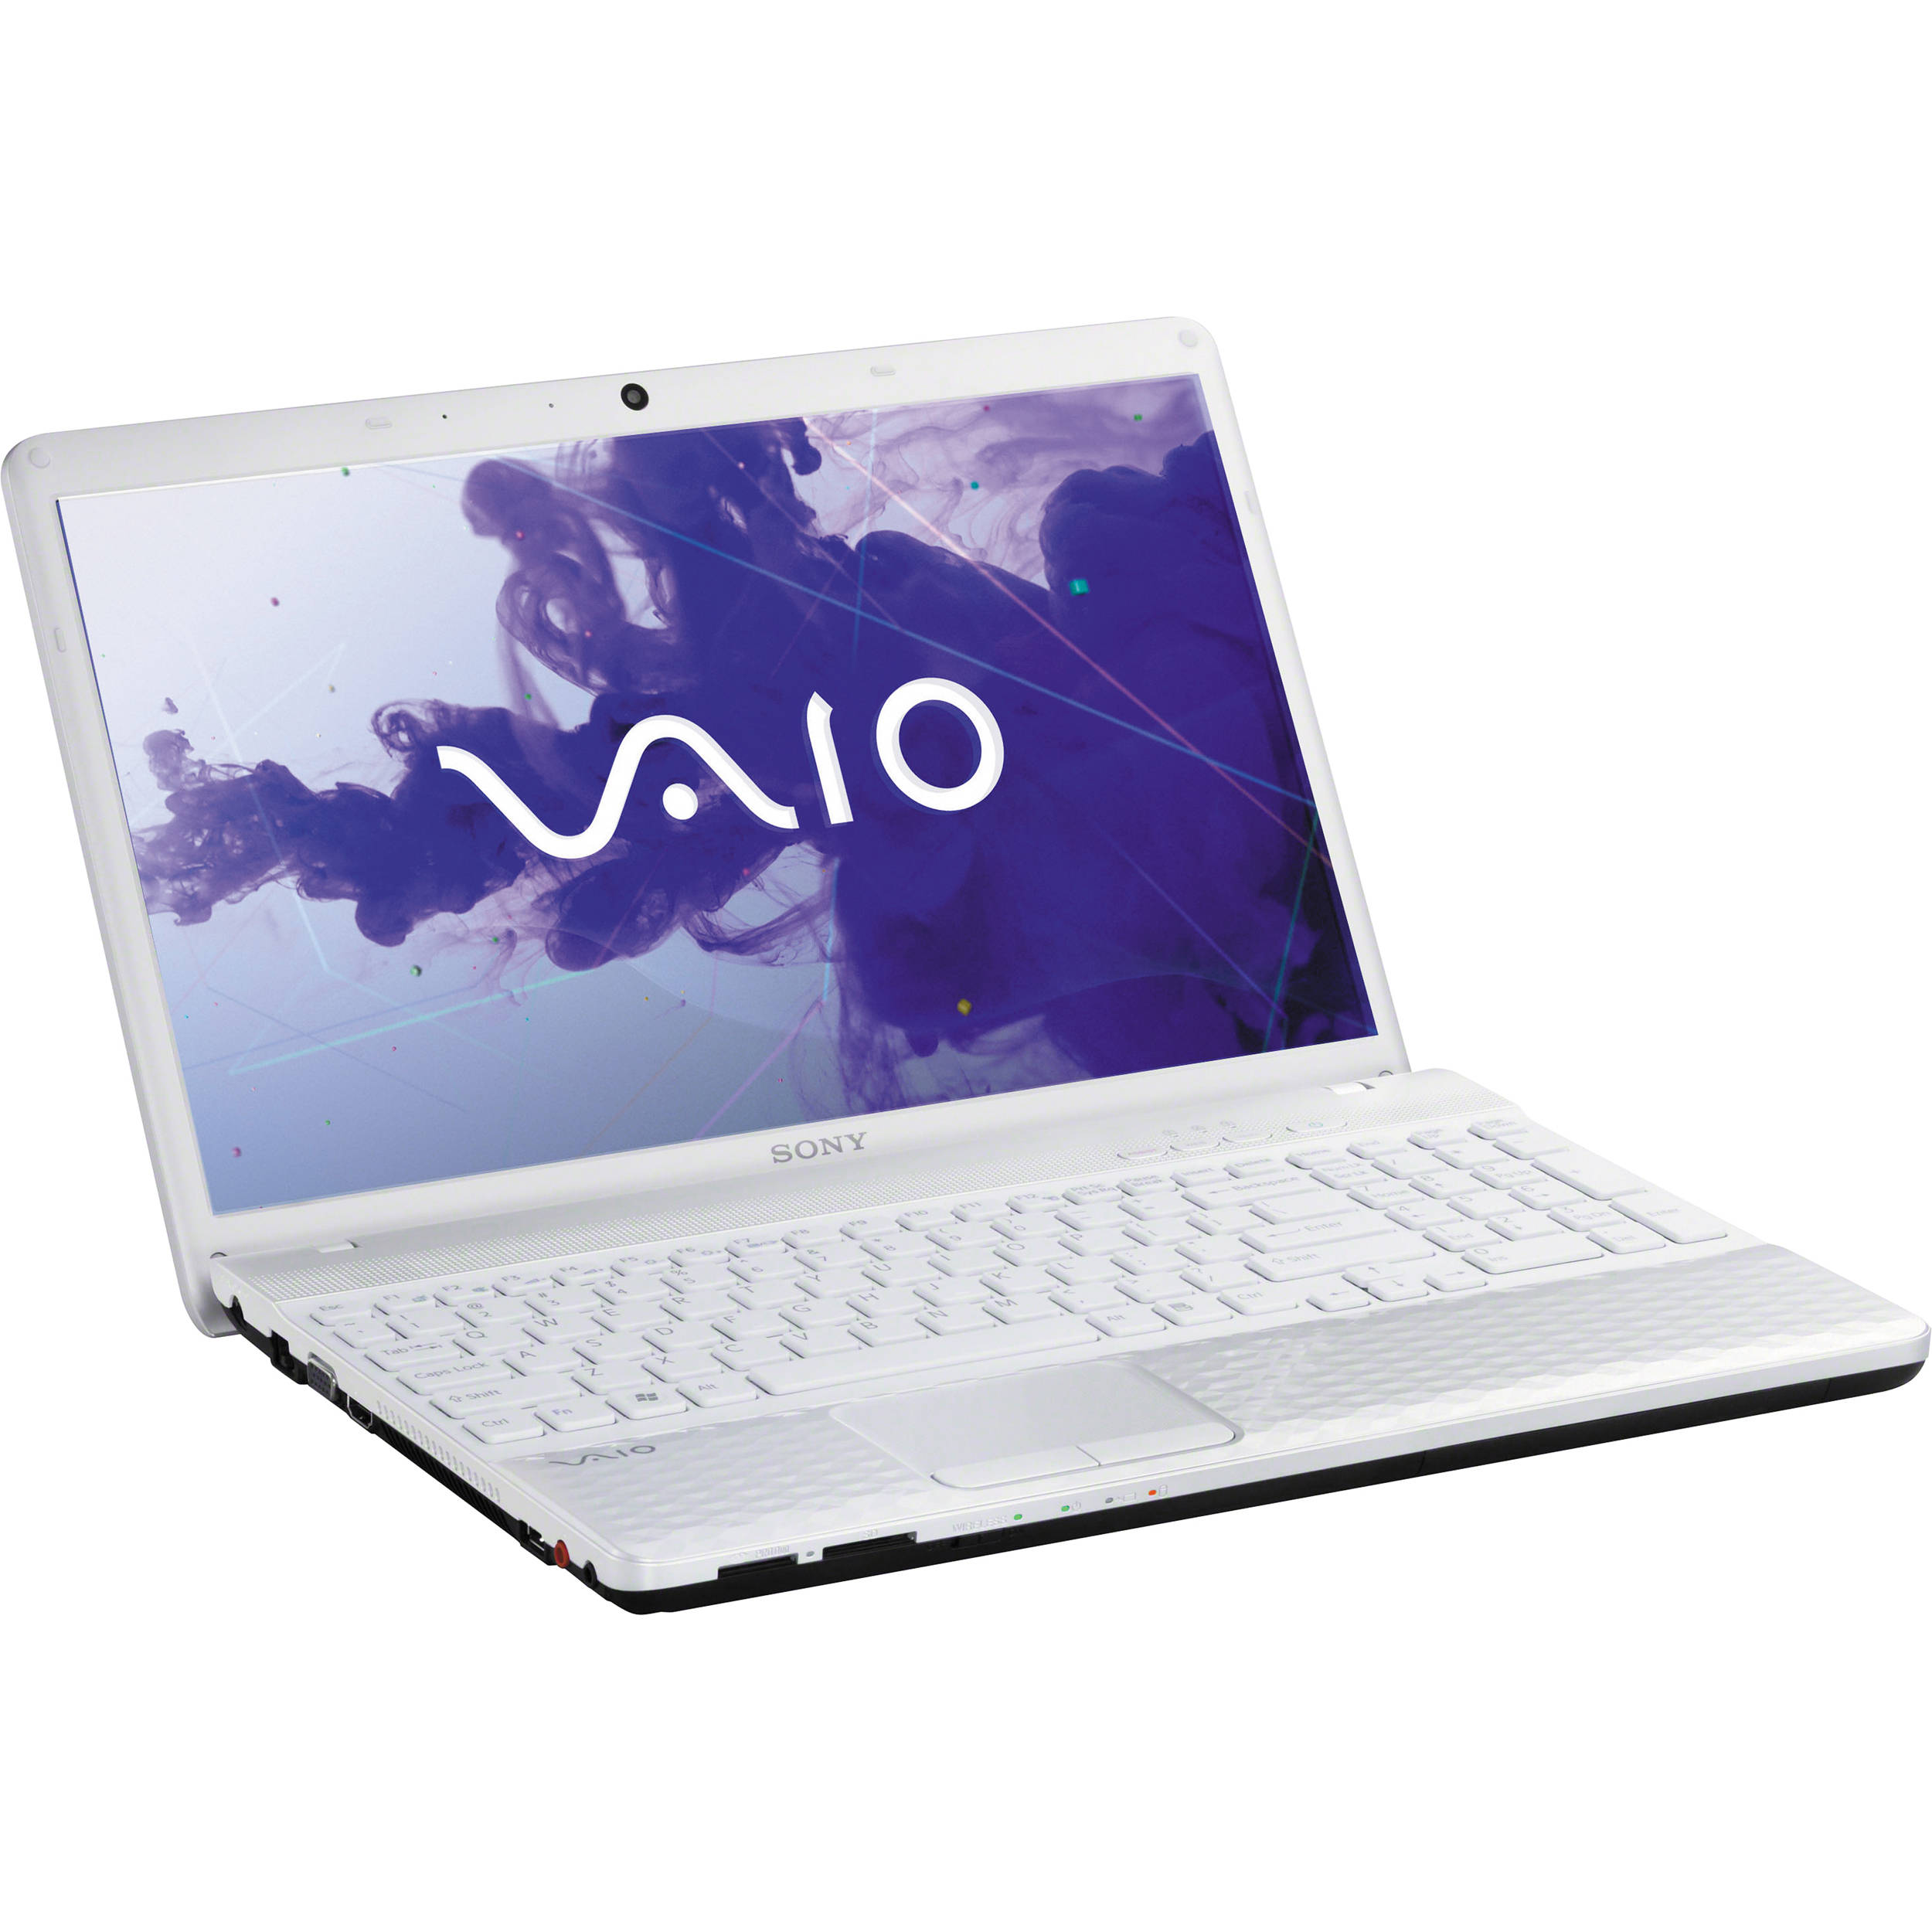 SONY VAIO VPCEH24FX SHARED LIBRARY DRIVERS FOR WINDOWS DOWNLOAD